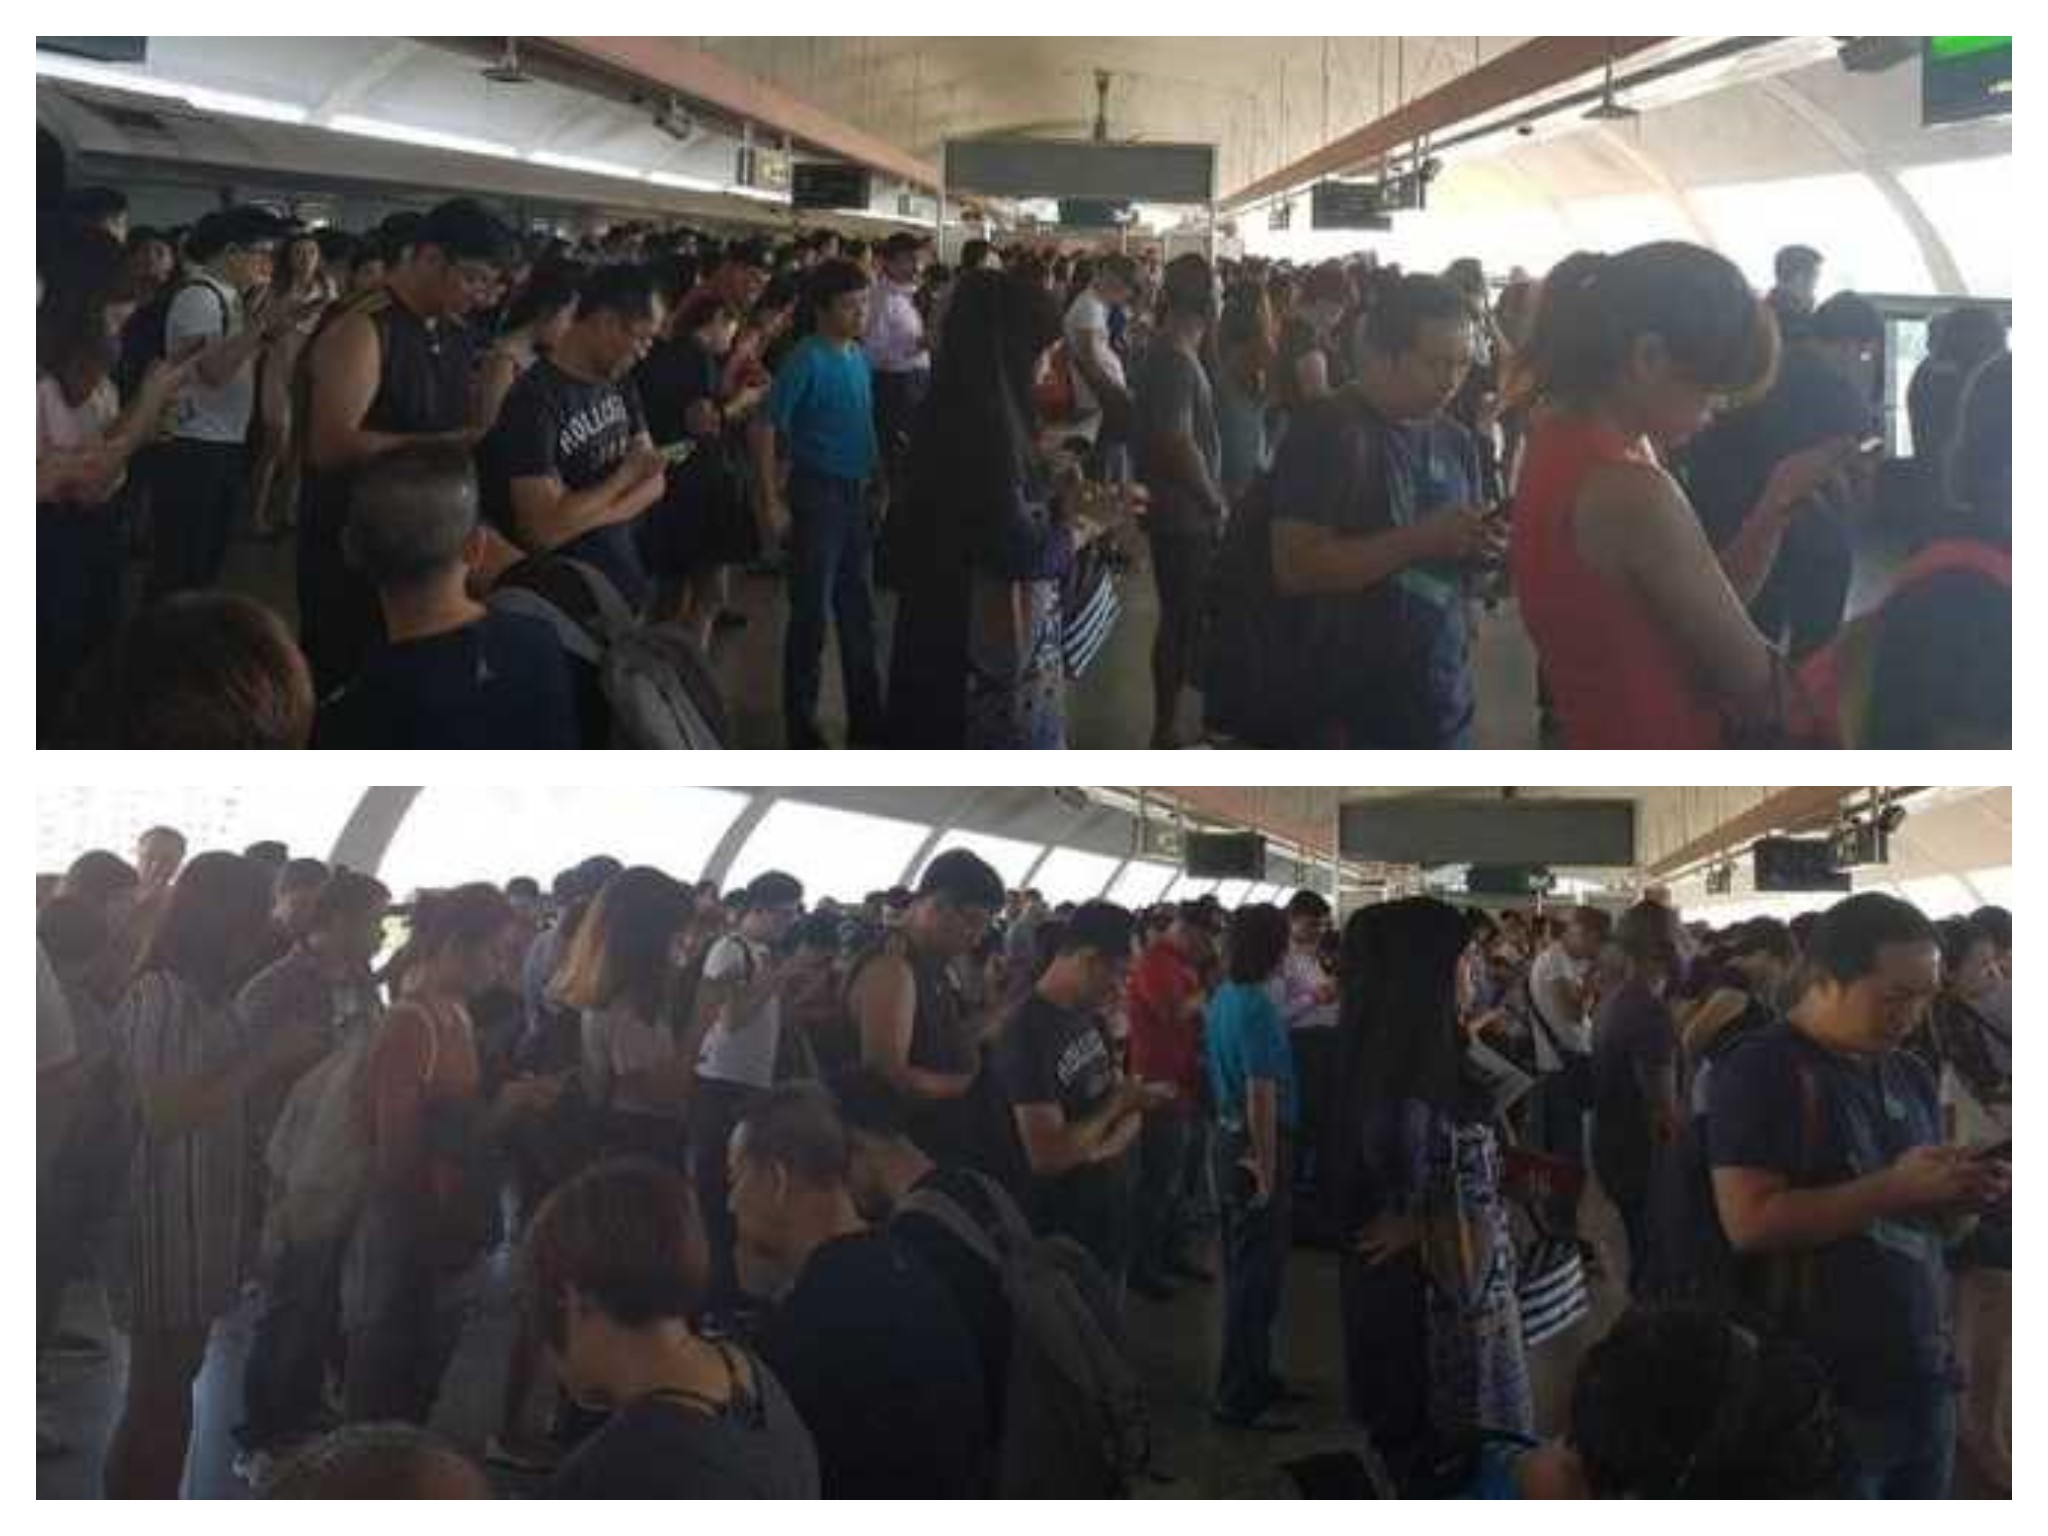 Software fault behind Tuesday morning's East-West Line delay: SMRT